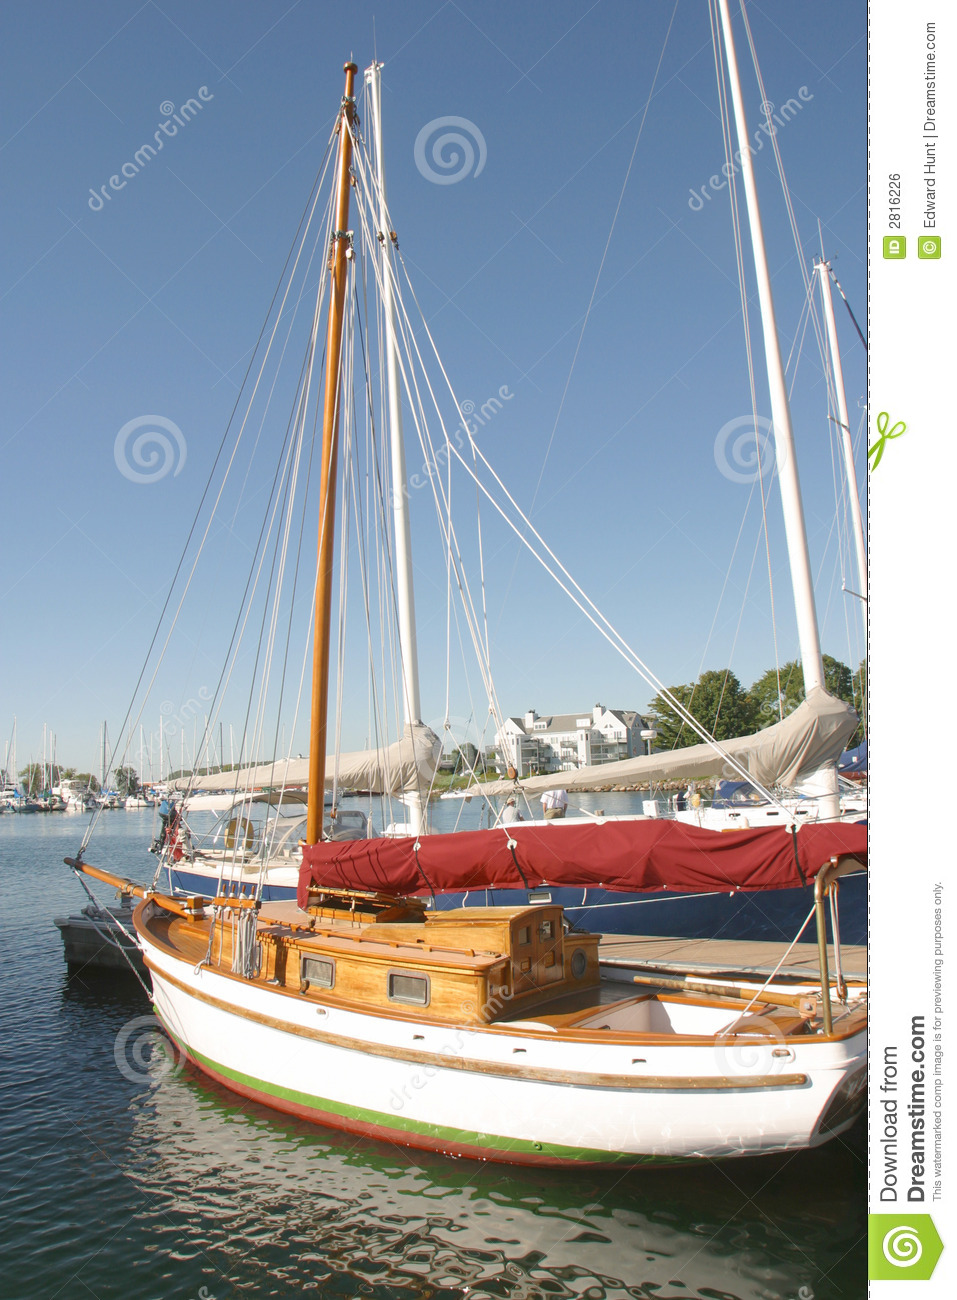 wooden sailboat at the dock.